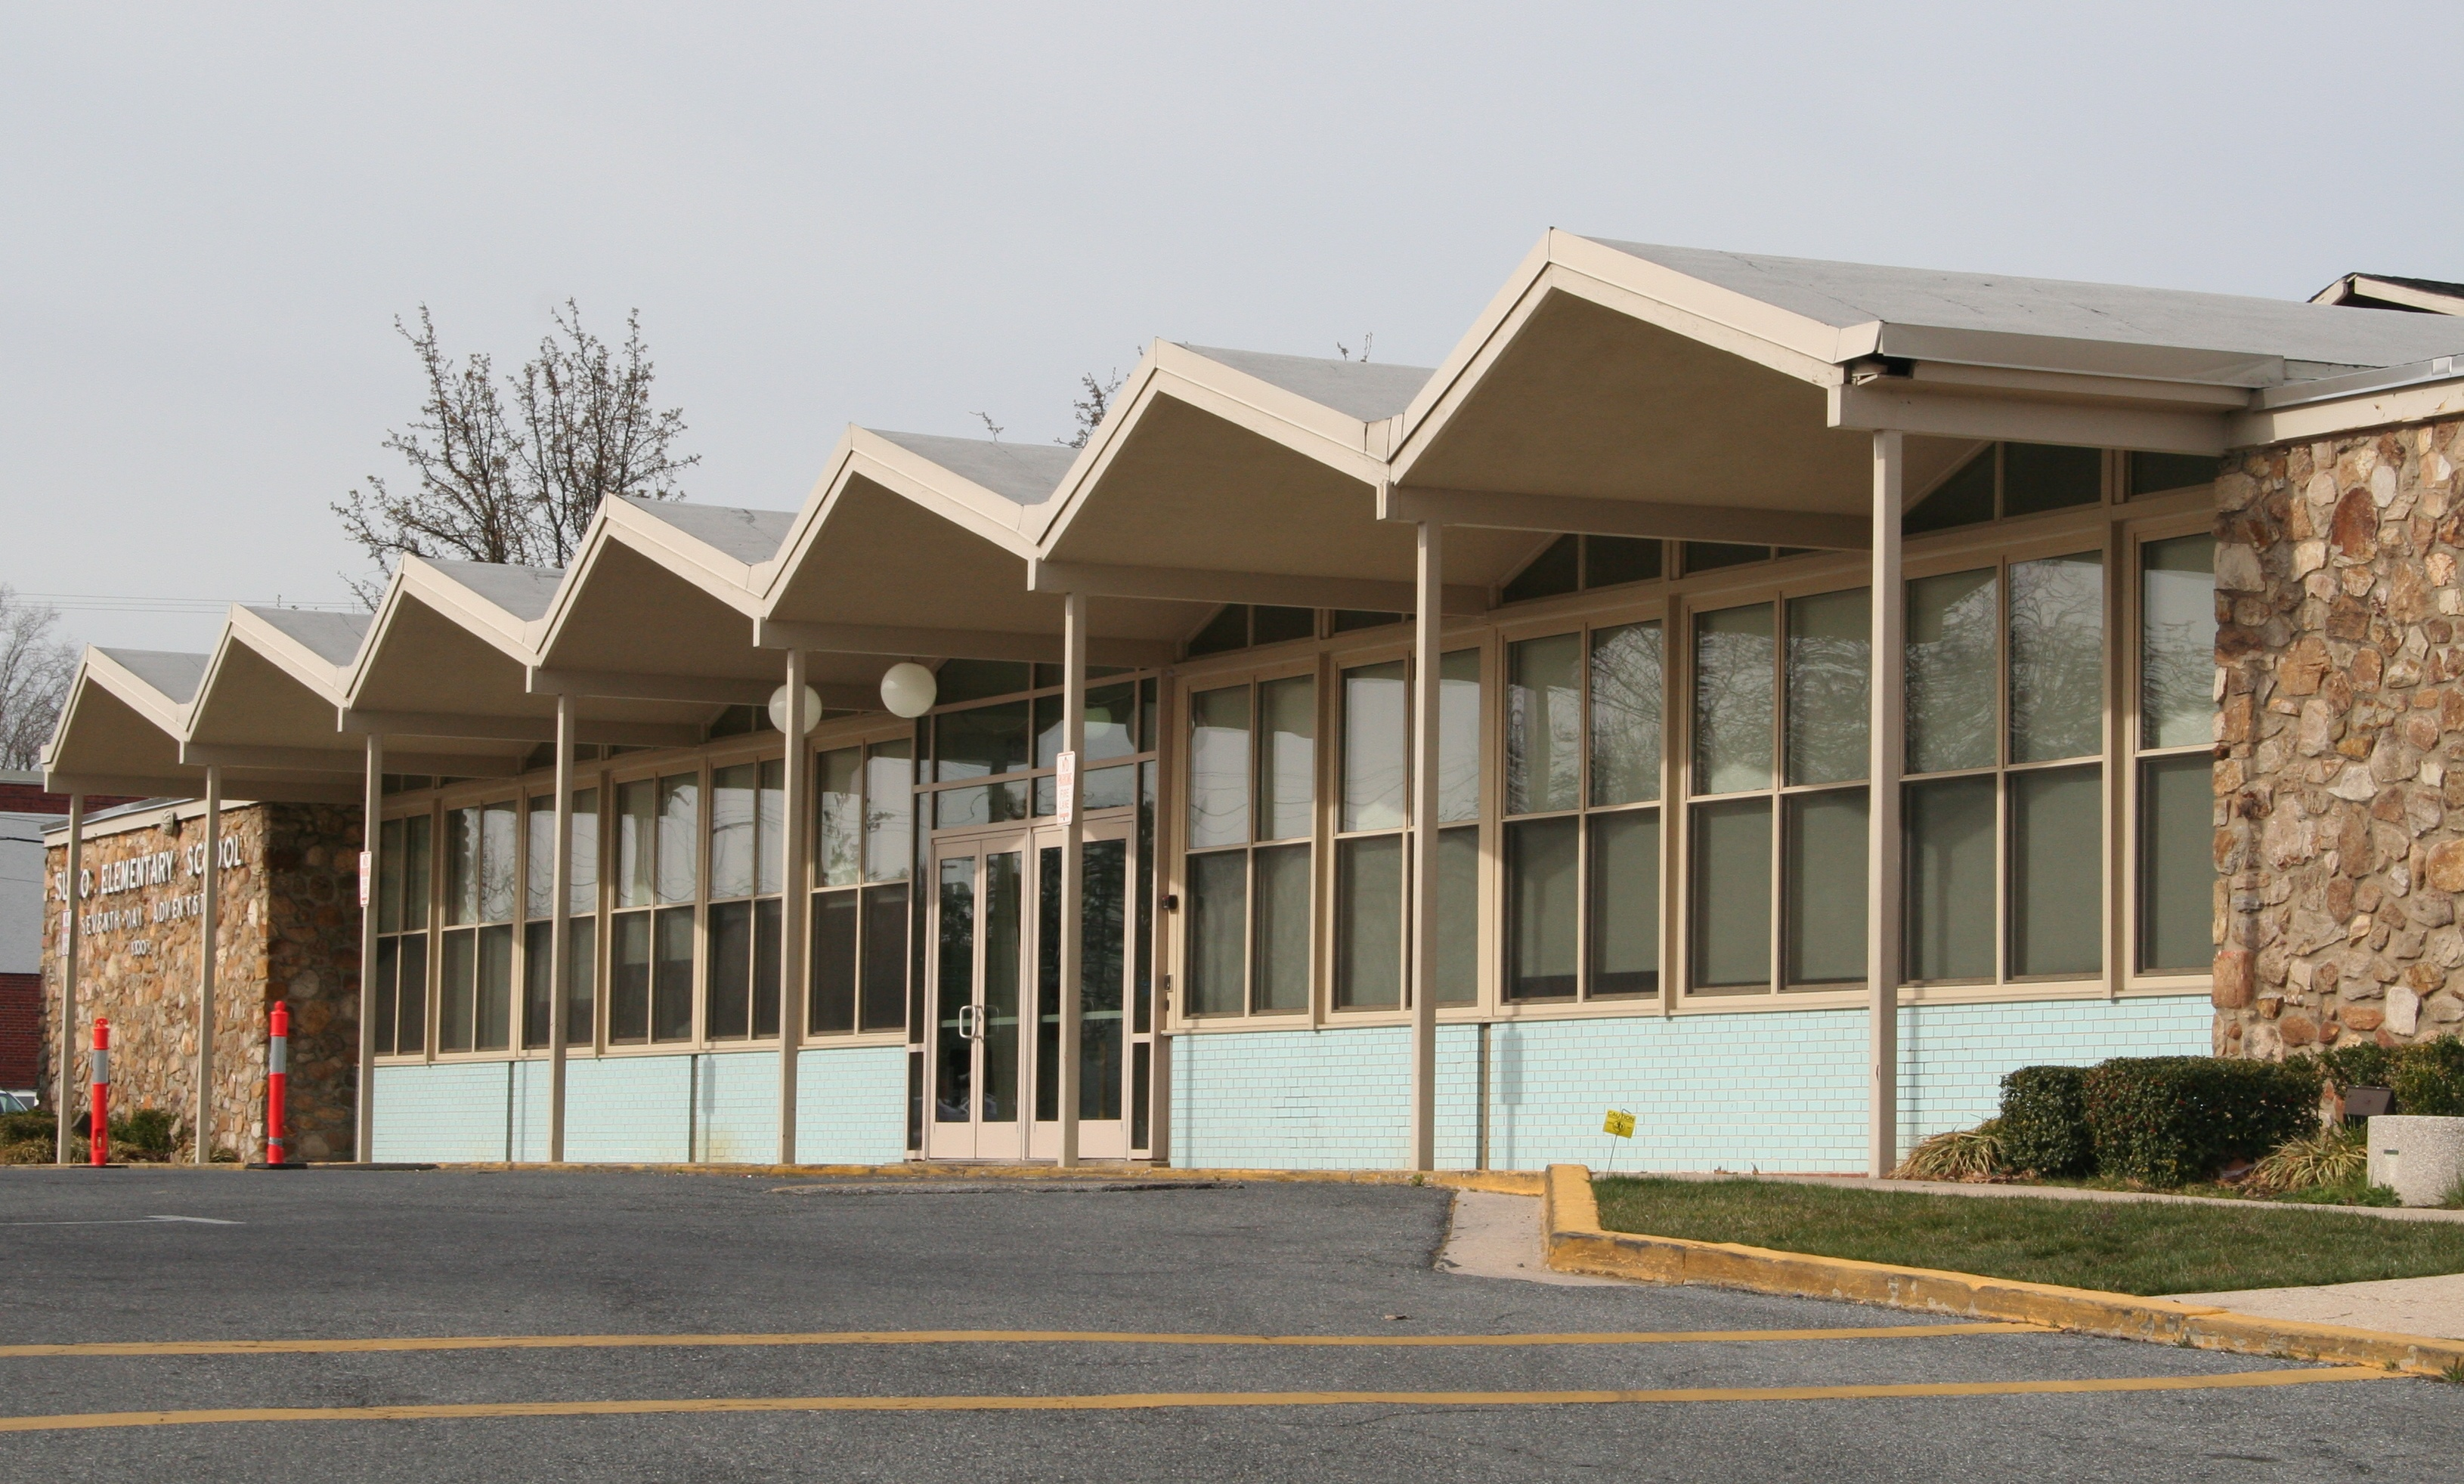 Sligo Adventist Elementary School (1963), Ronald Senseman, architect